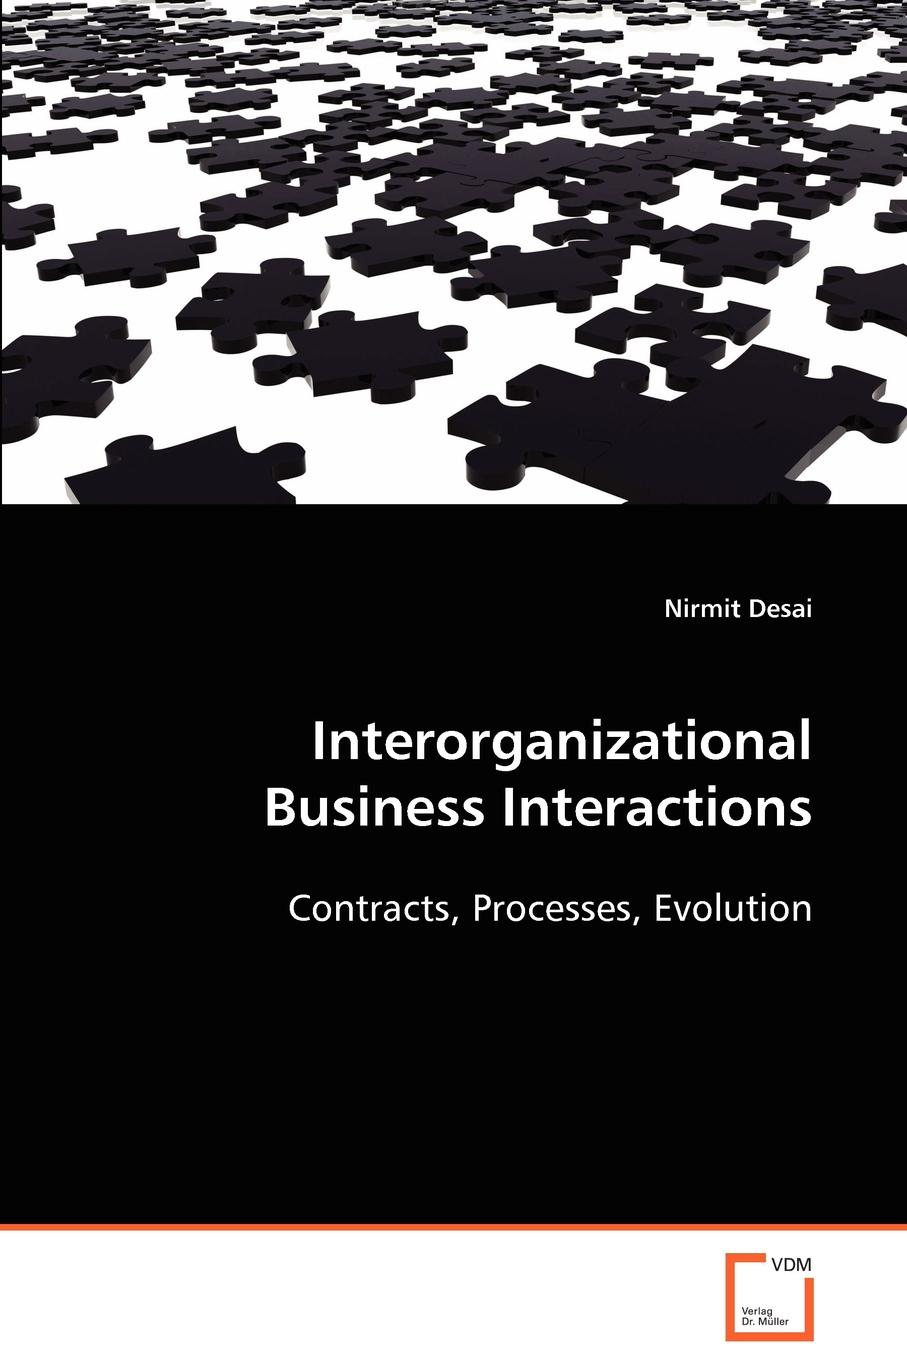 Nirmit Desai Interorganizational Business Interactions modeling energy–economy interactions